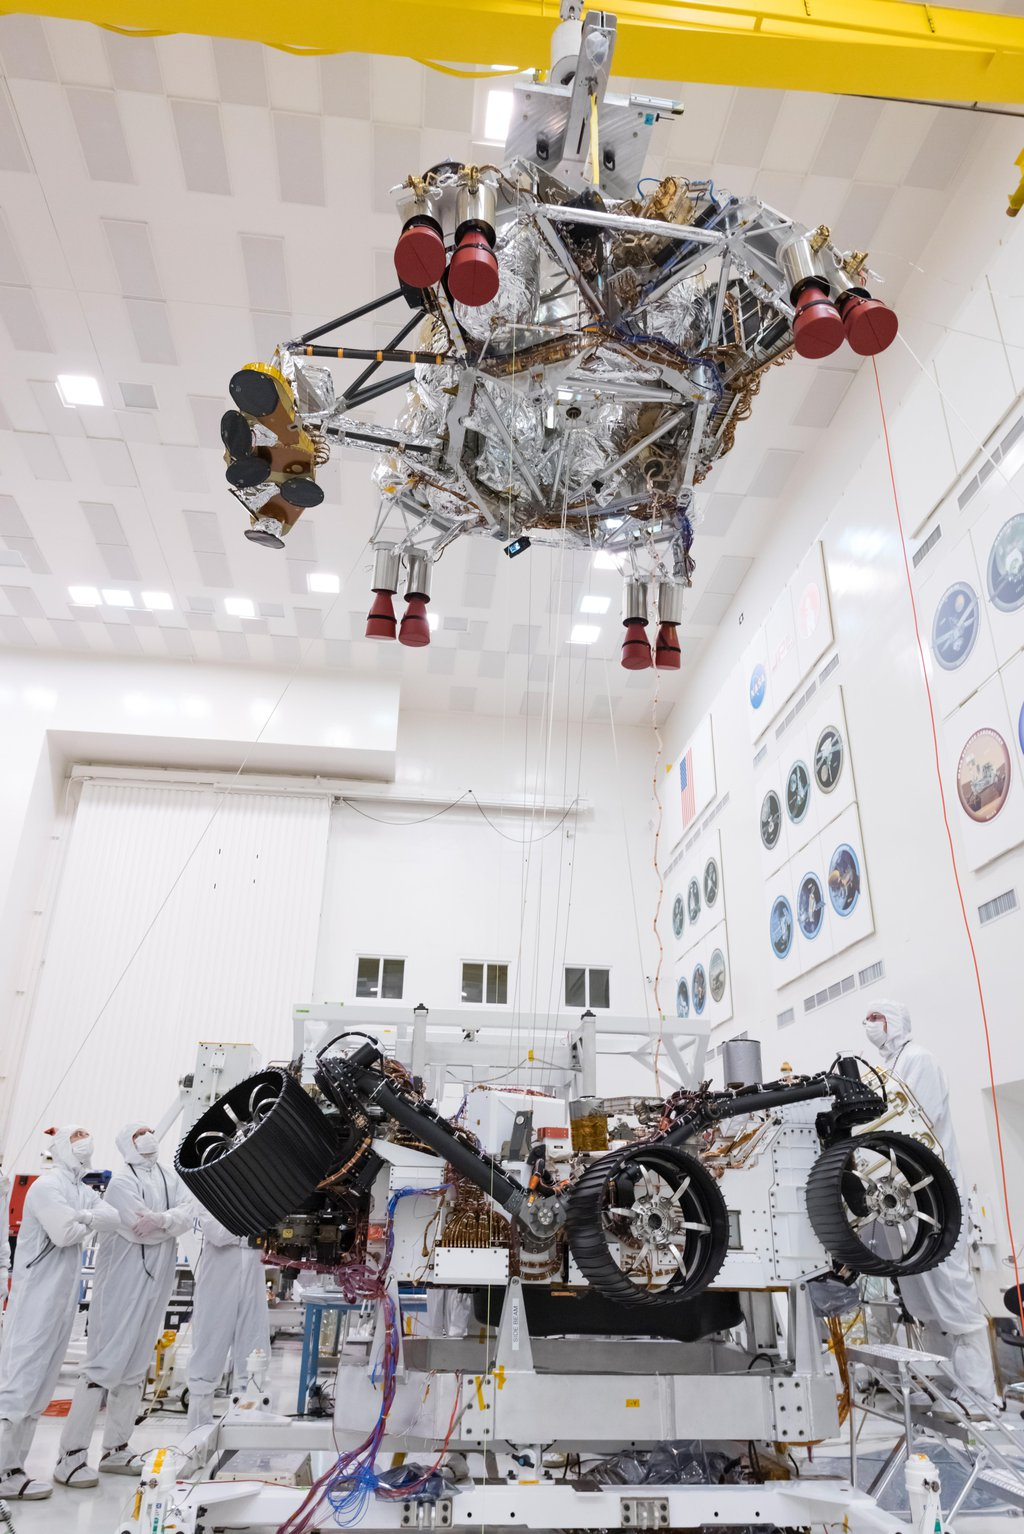 In this picture from Sept. 28, 2019, engineers and technicians working on the Mars 2020 spacecraft at NASA's Jet Propulsion Laboratory in Pasadena, California, look on as a crane lifts the rocket-powered descent stage away from the rover after a test.